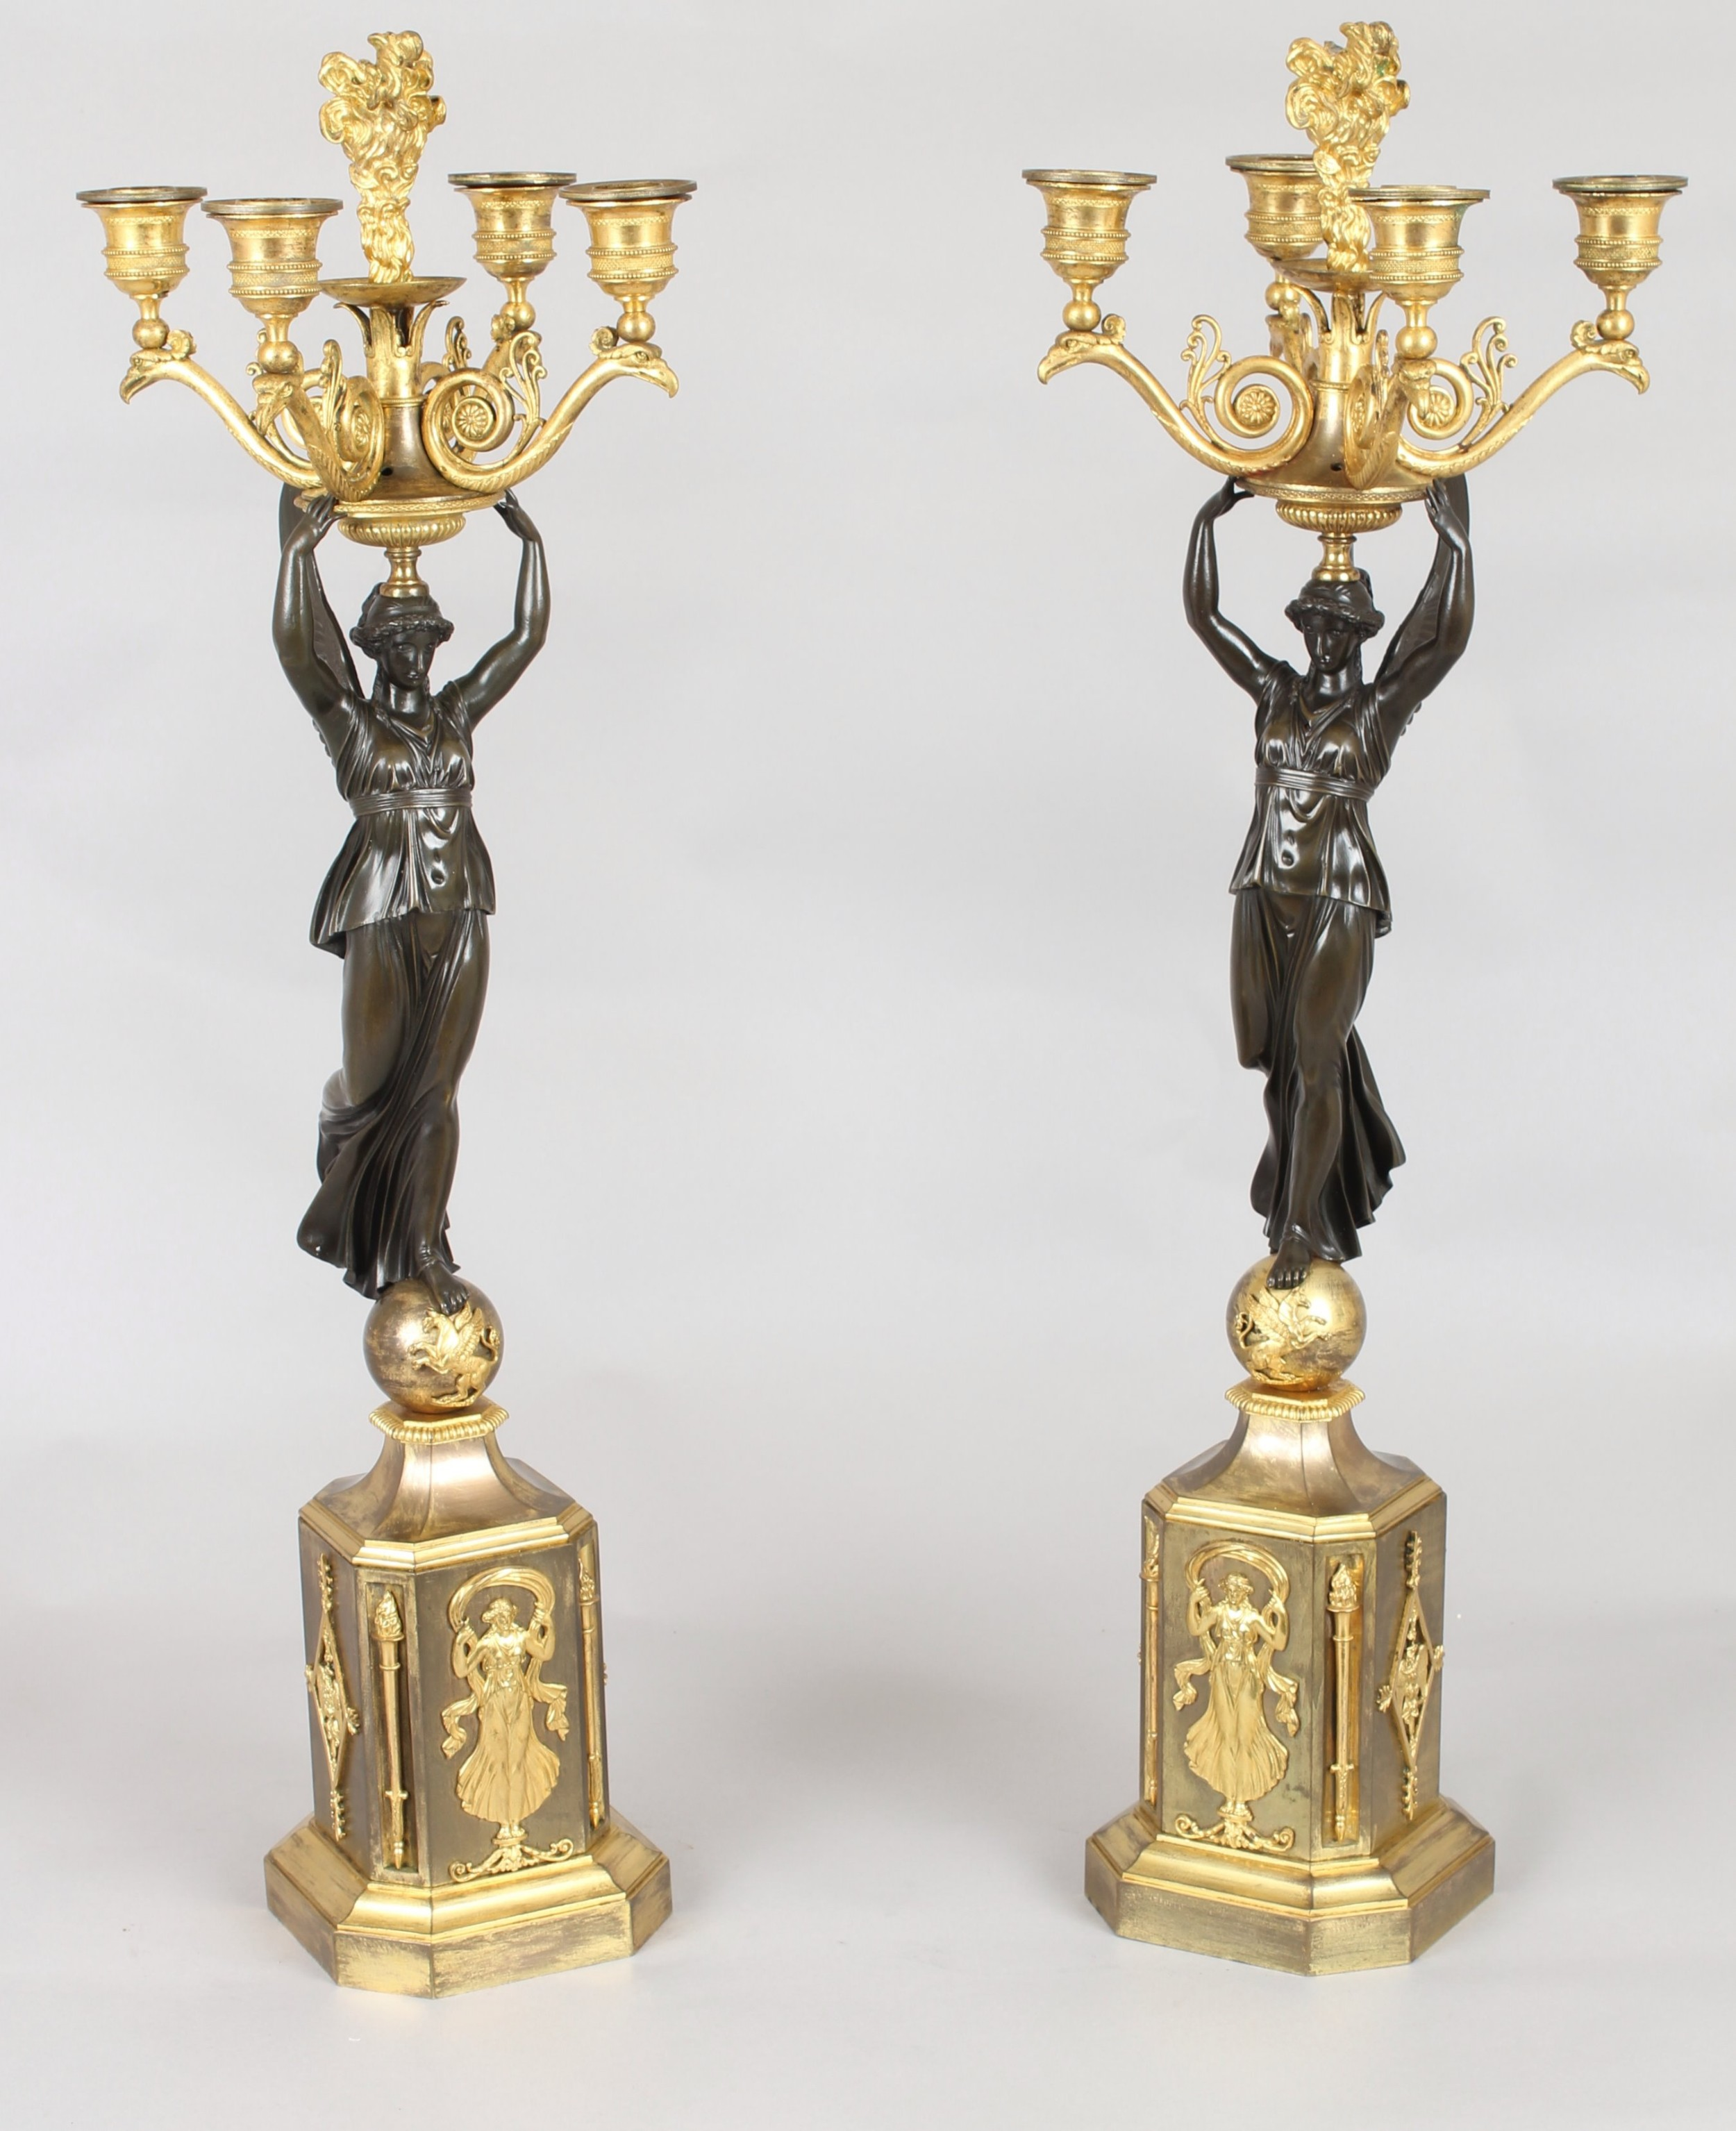 pair of fine french bronze and ormolu fivelight candelabra